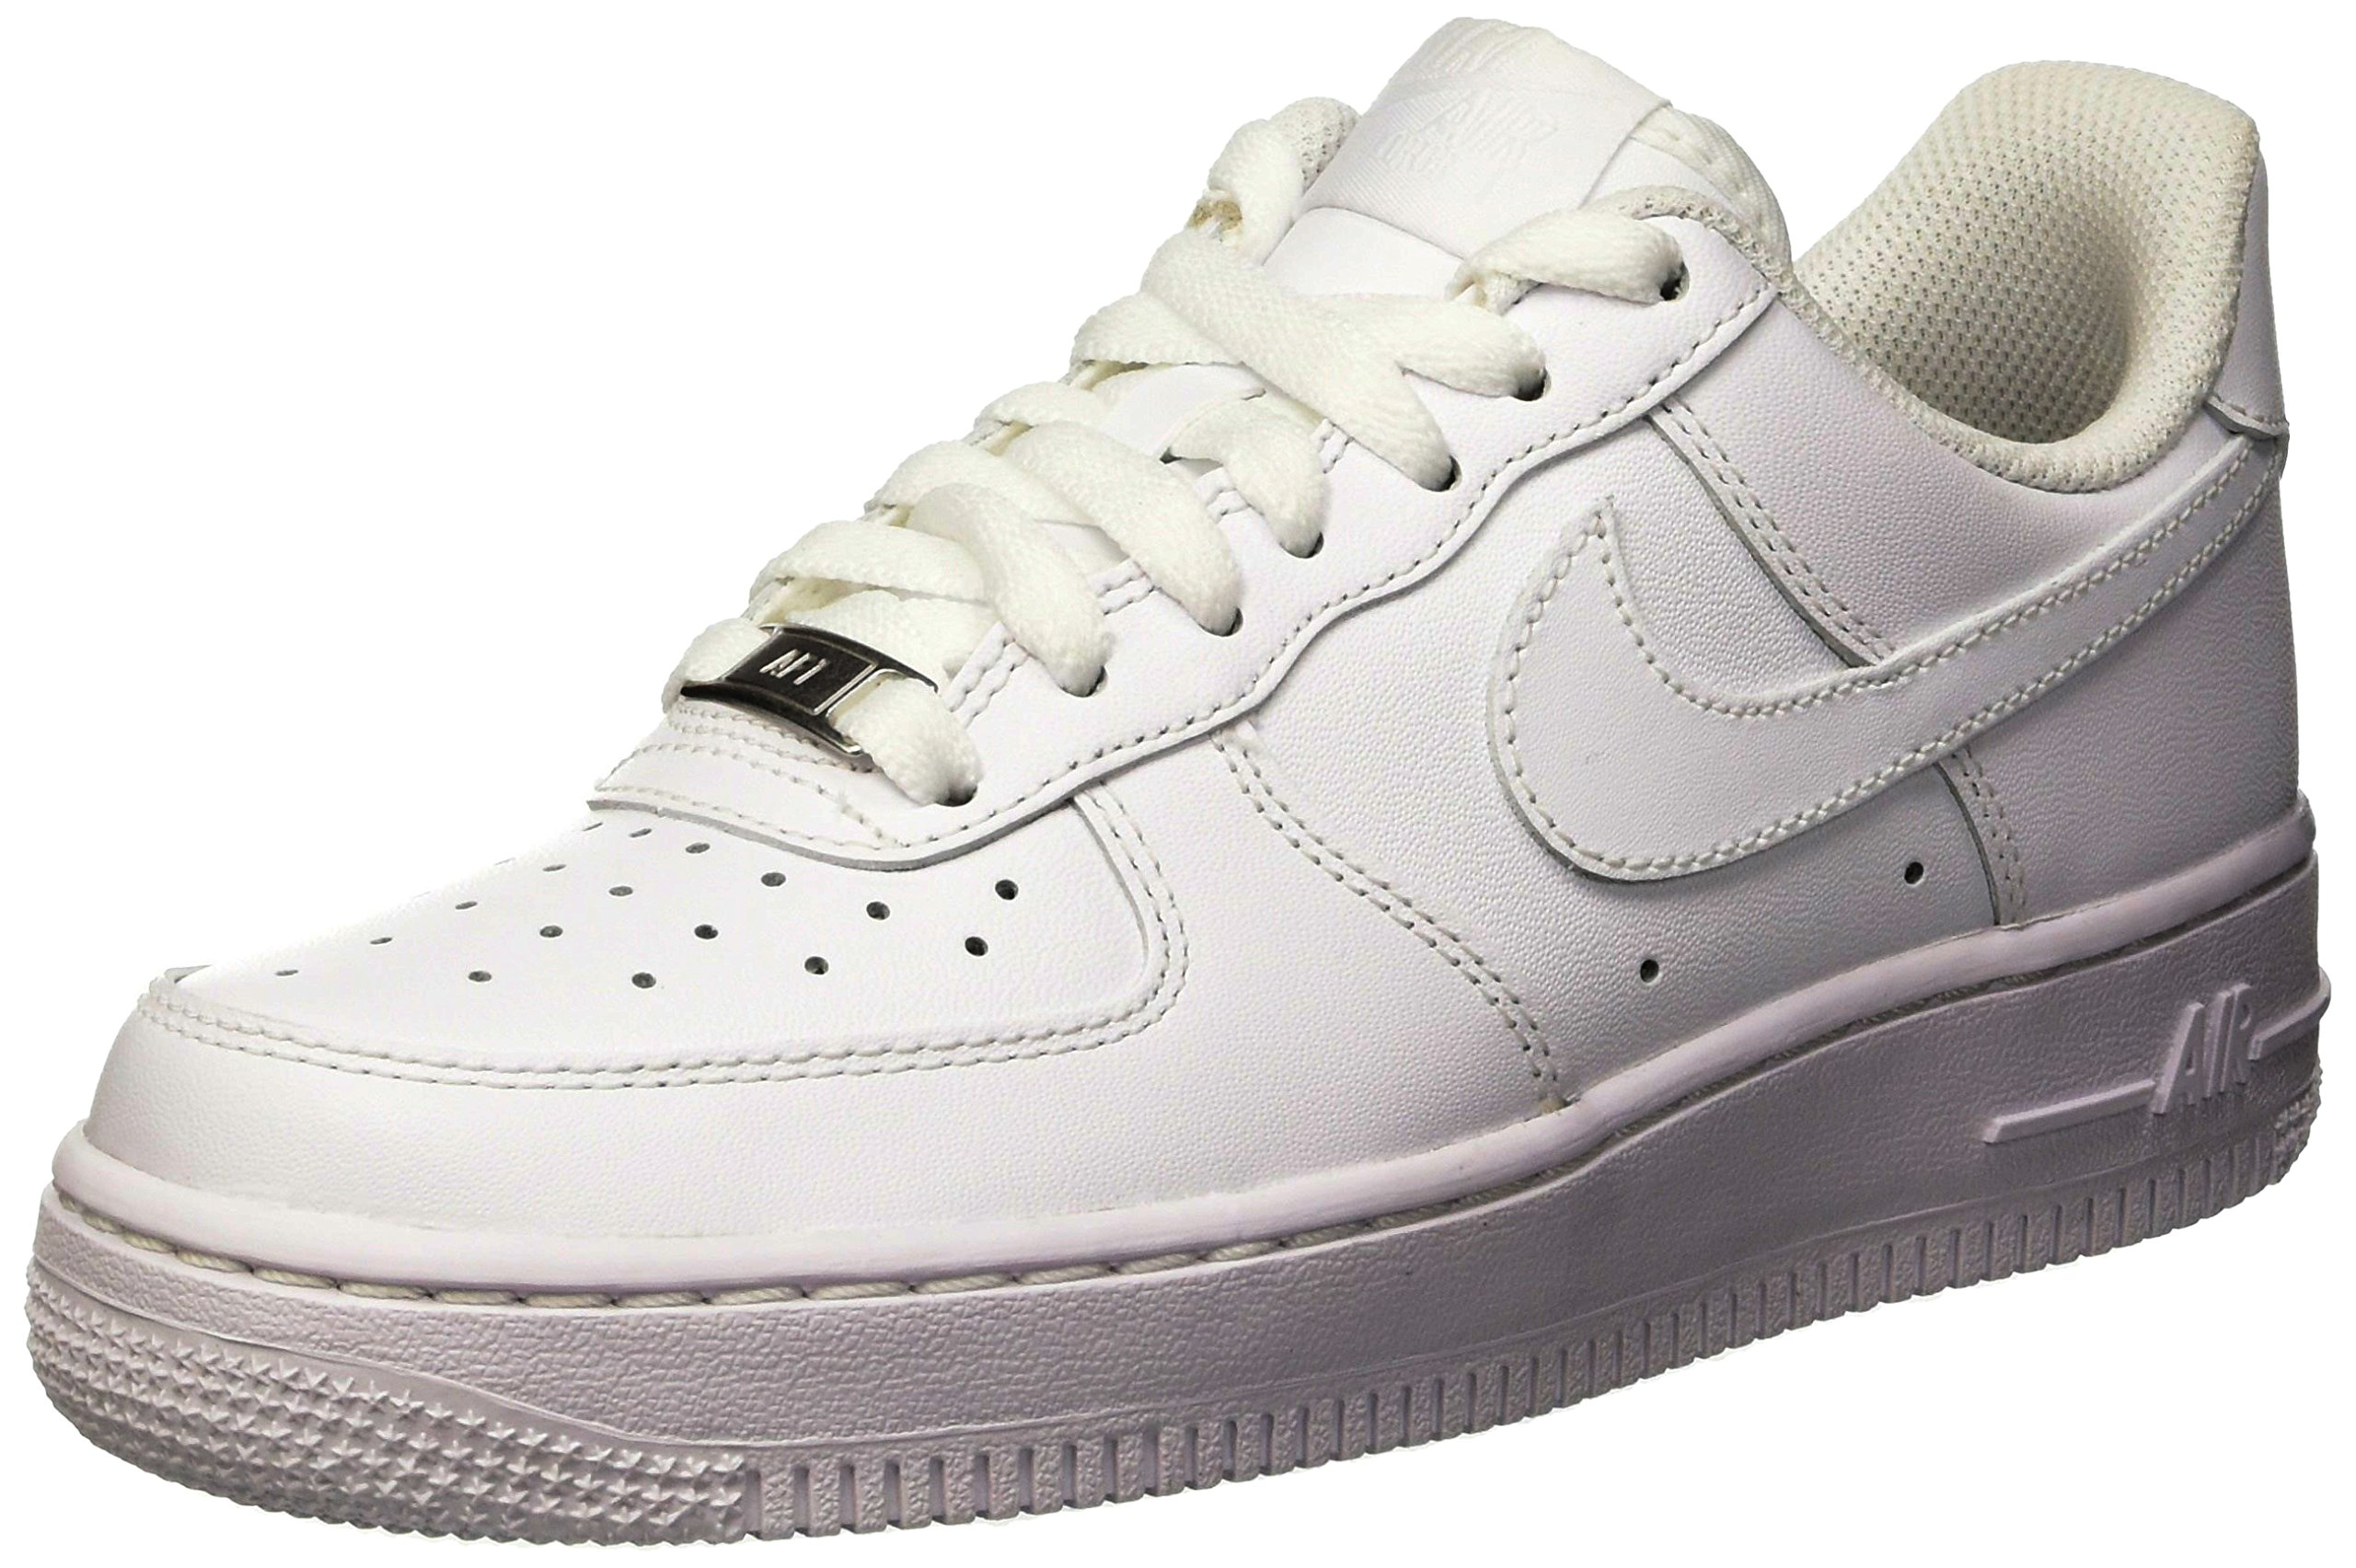 Details about NIKE AIR FORCE 1 JDI PRM (GS) Women's Youth Girls Shoes AO3977 001 US 4.5Y UK 4